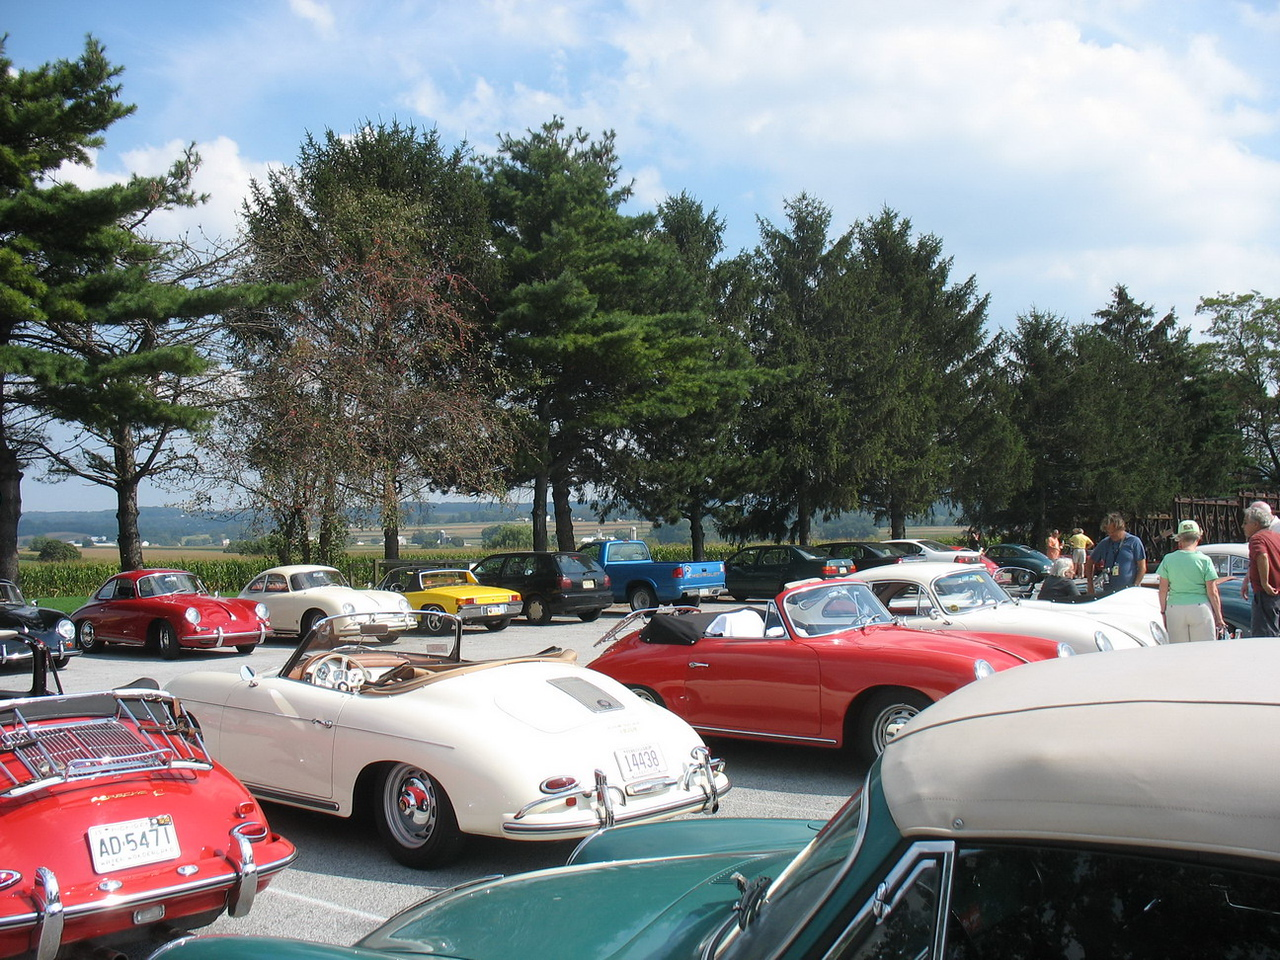 """Late in the afternoon, the entire gathering of nearly 200 cars took a scenic route to the Strasburg Railroad  <a href=""""http://www.strasburgrailroad.com/about-the-railroad.php"""">http://www.strasburgrailroad.com/about-the-railroad.php</a> <br /> <br /> This is part of the parking lot. Our car is the red convertible in the middle with the top down. This was the only time we had the top down on this trip. Too hot in the sun for a long trip and too windy on the Interstates. Then too rainy."""